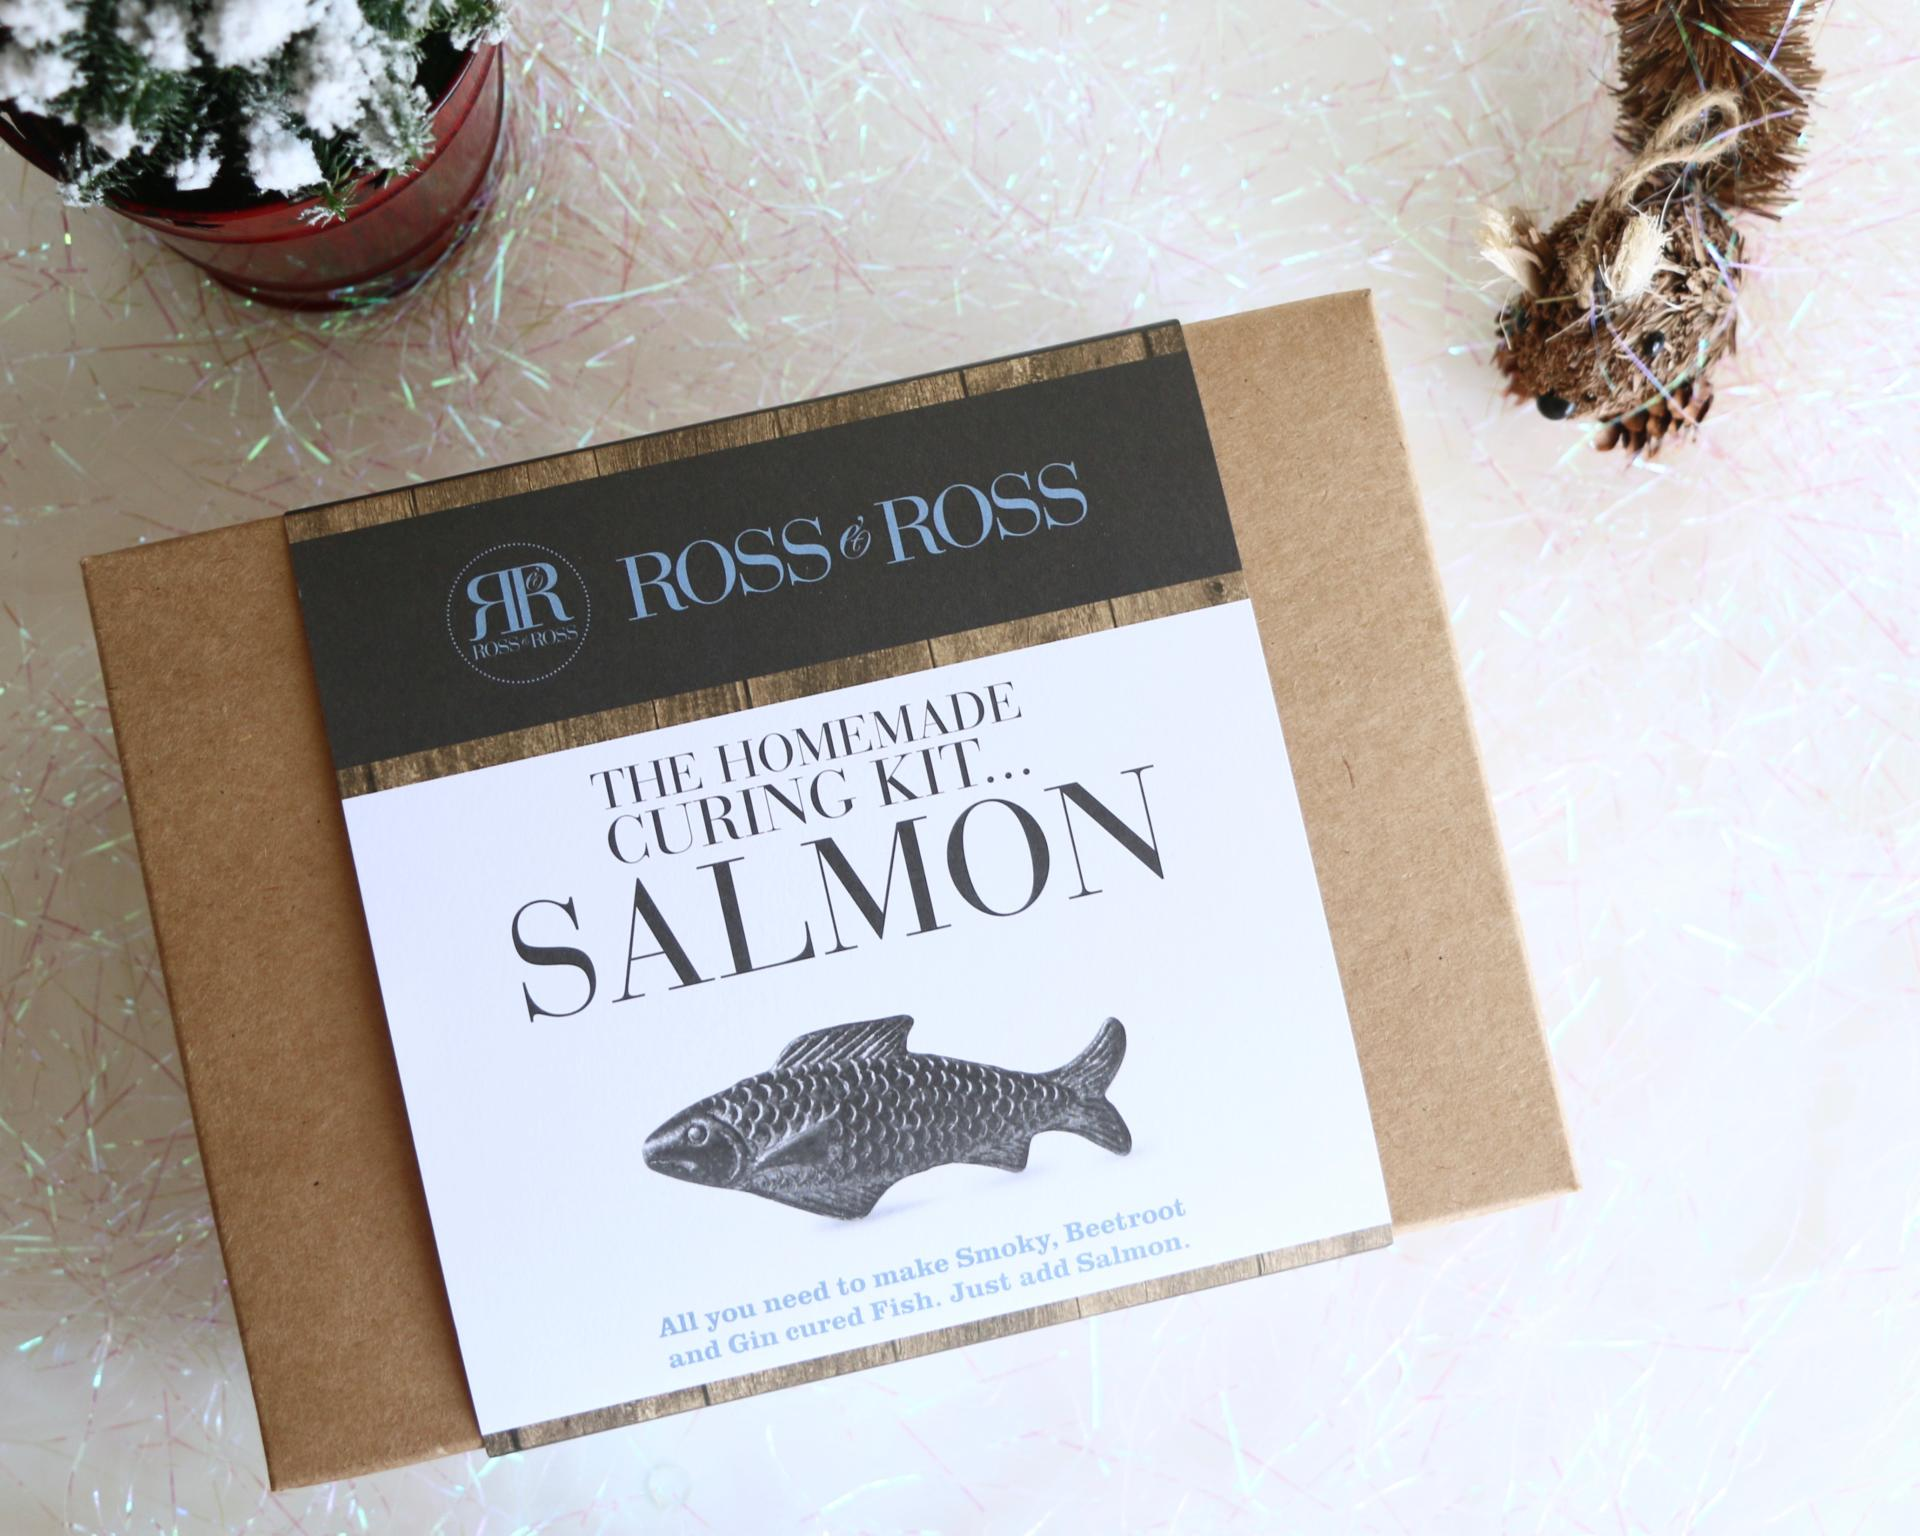 ross-ross-homemade-salmon-curing-kitjpg